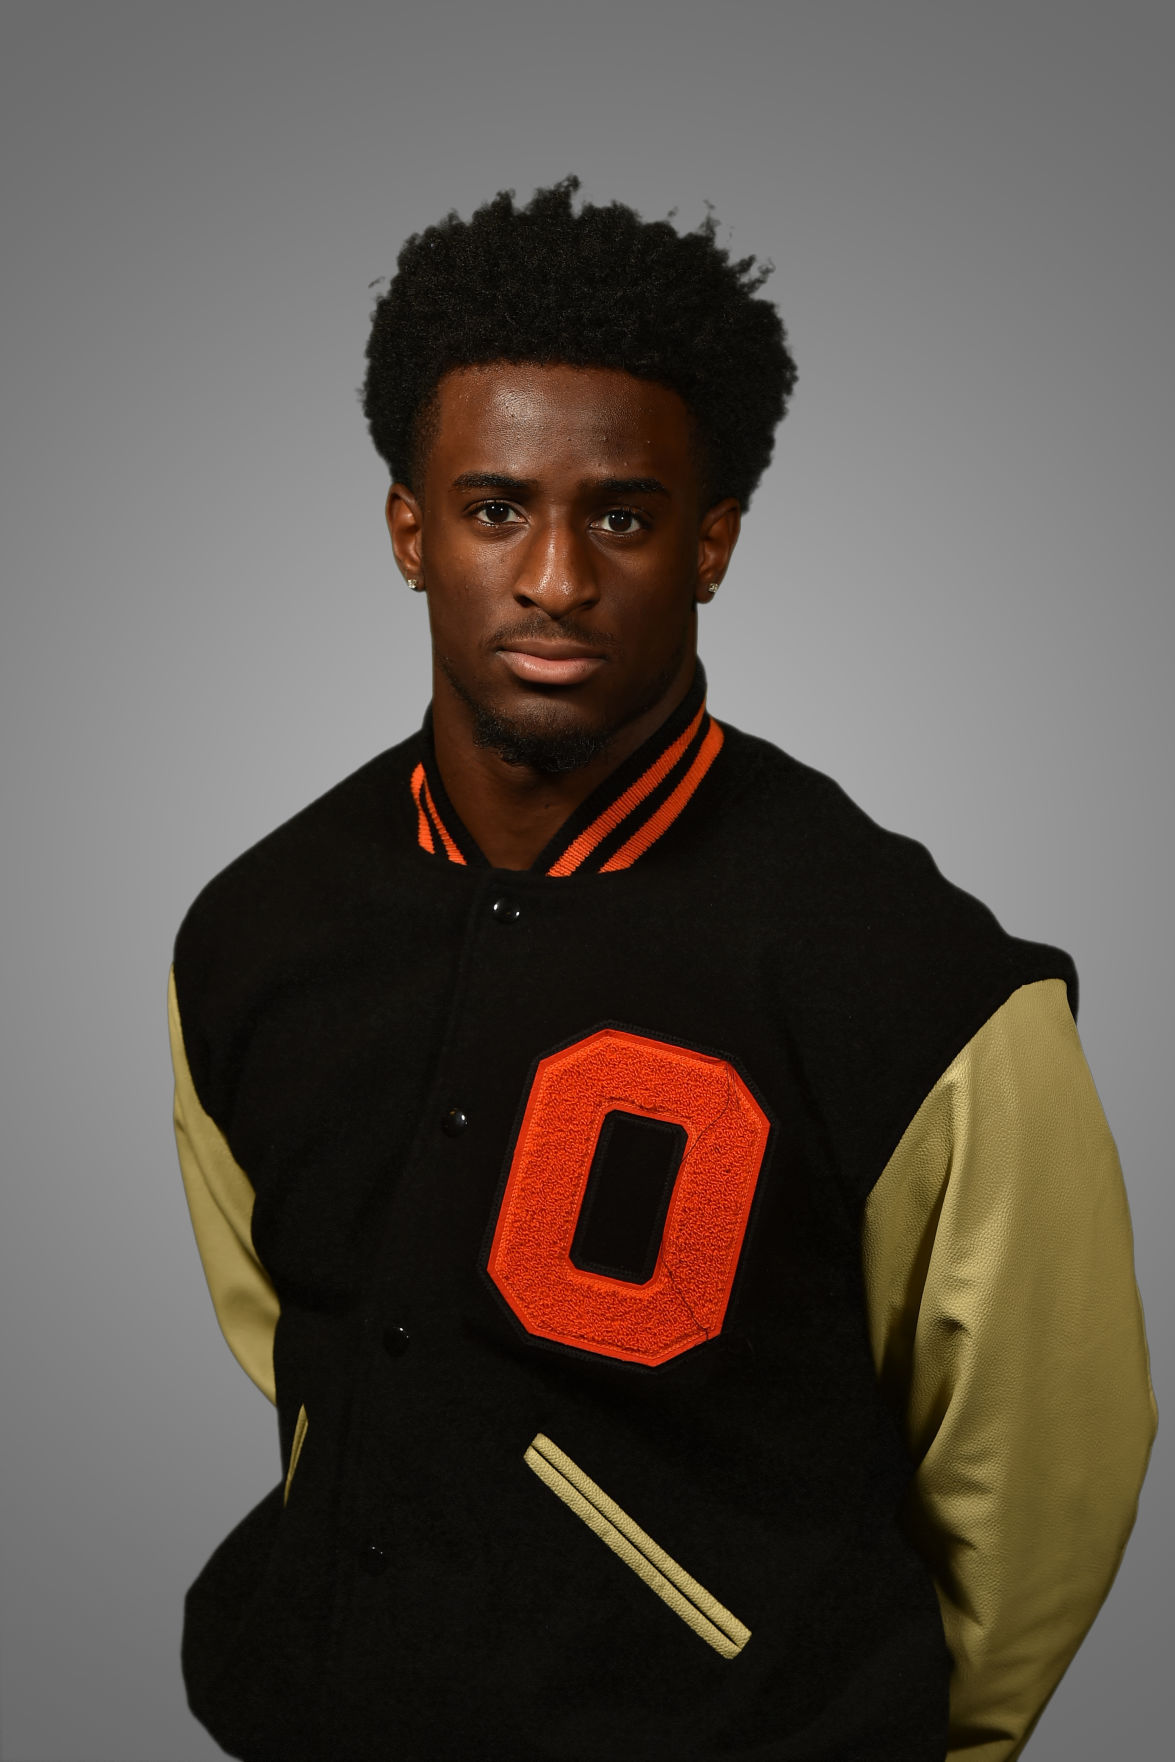 OSU Sports Extra - This week in Oklahoma State football: Players of the week include Justice Hill